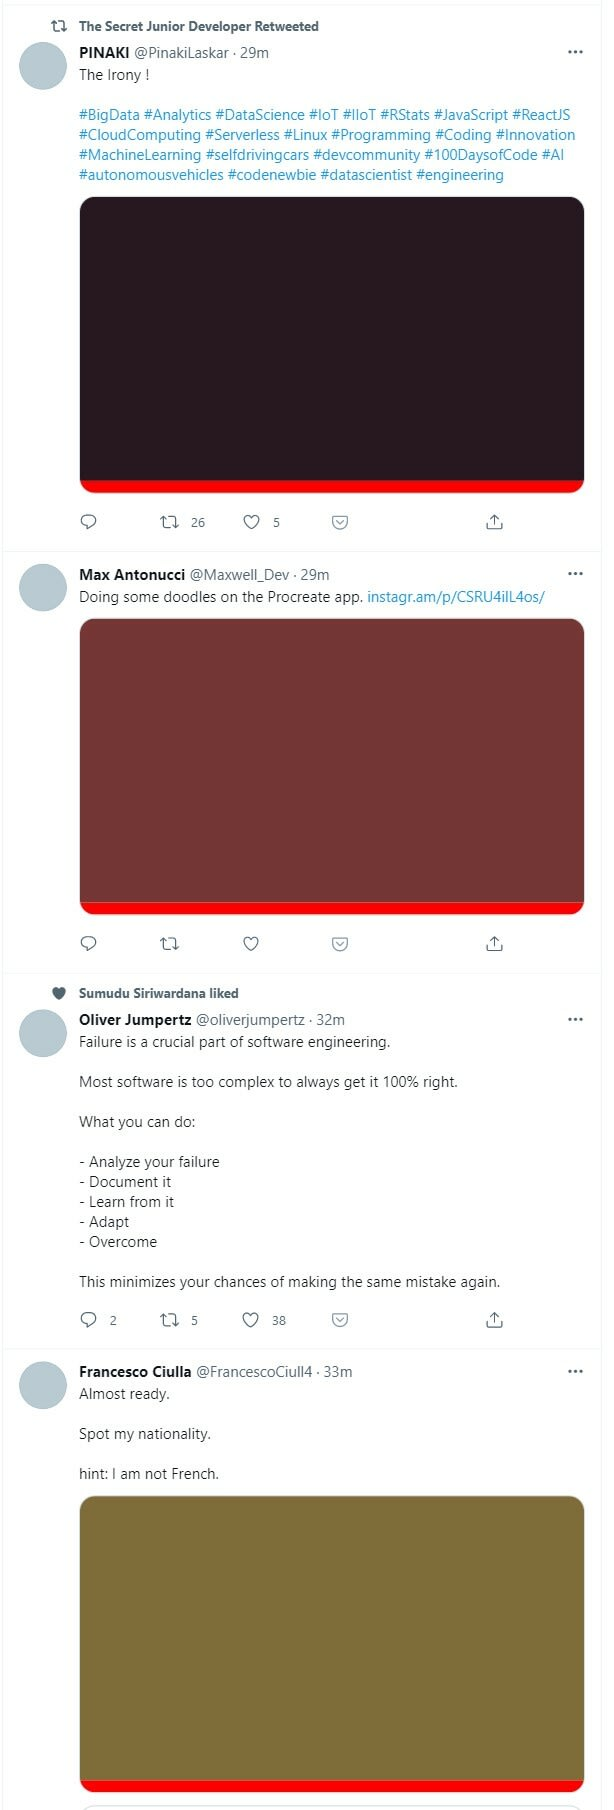 Twitter feed example with 3 images all with no alt text showing and just a red bar instead and various colour backgrounds where the images should be. None of the tweets makes sense without the image as the image is the context and main subject of the tweet